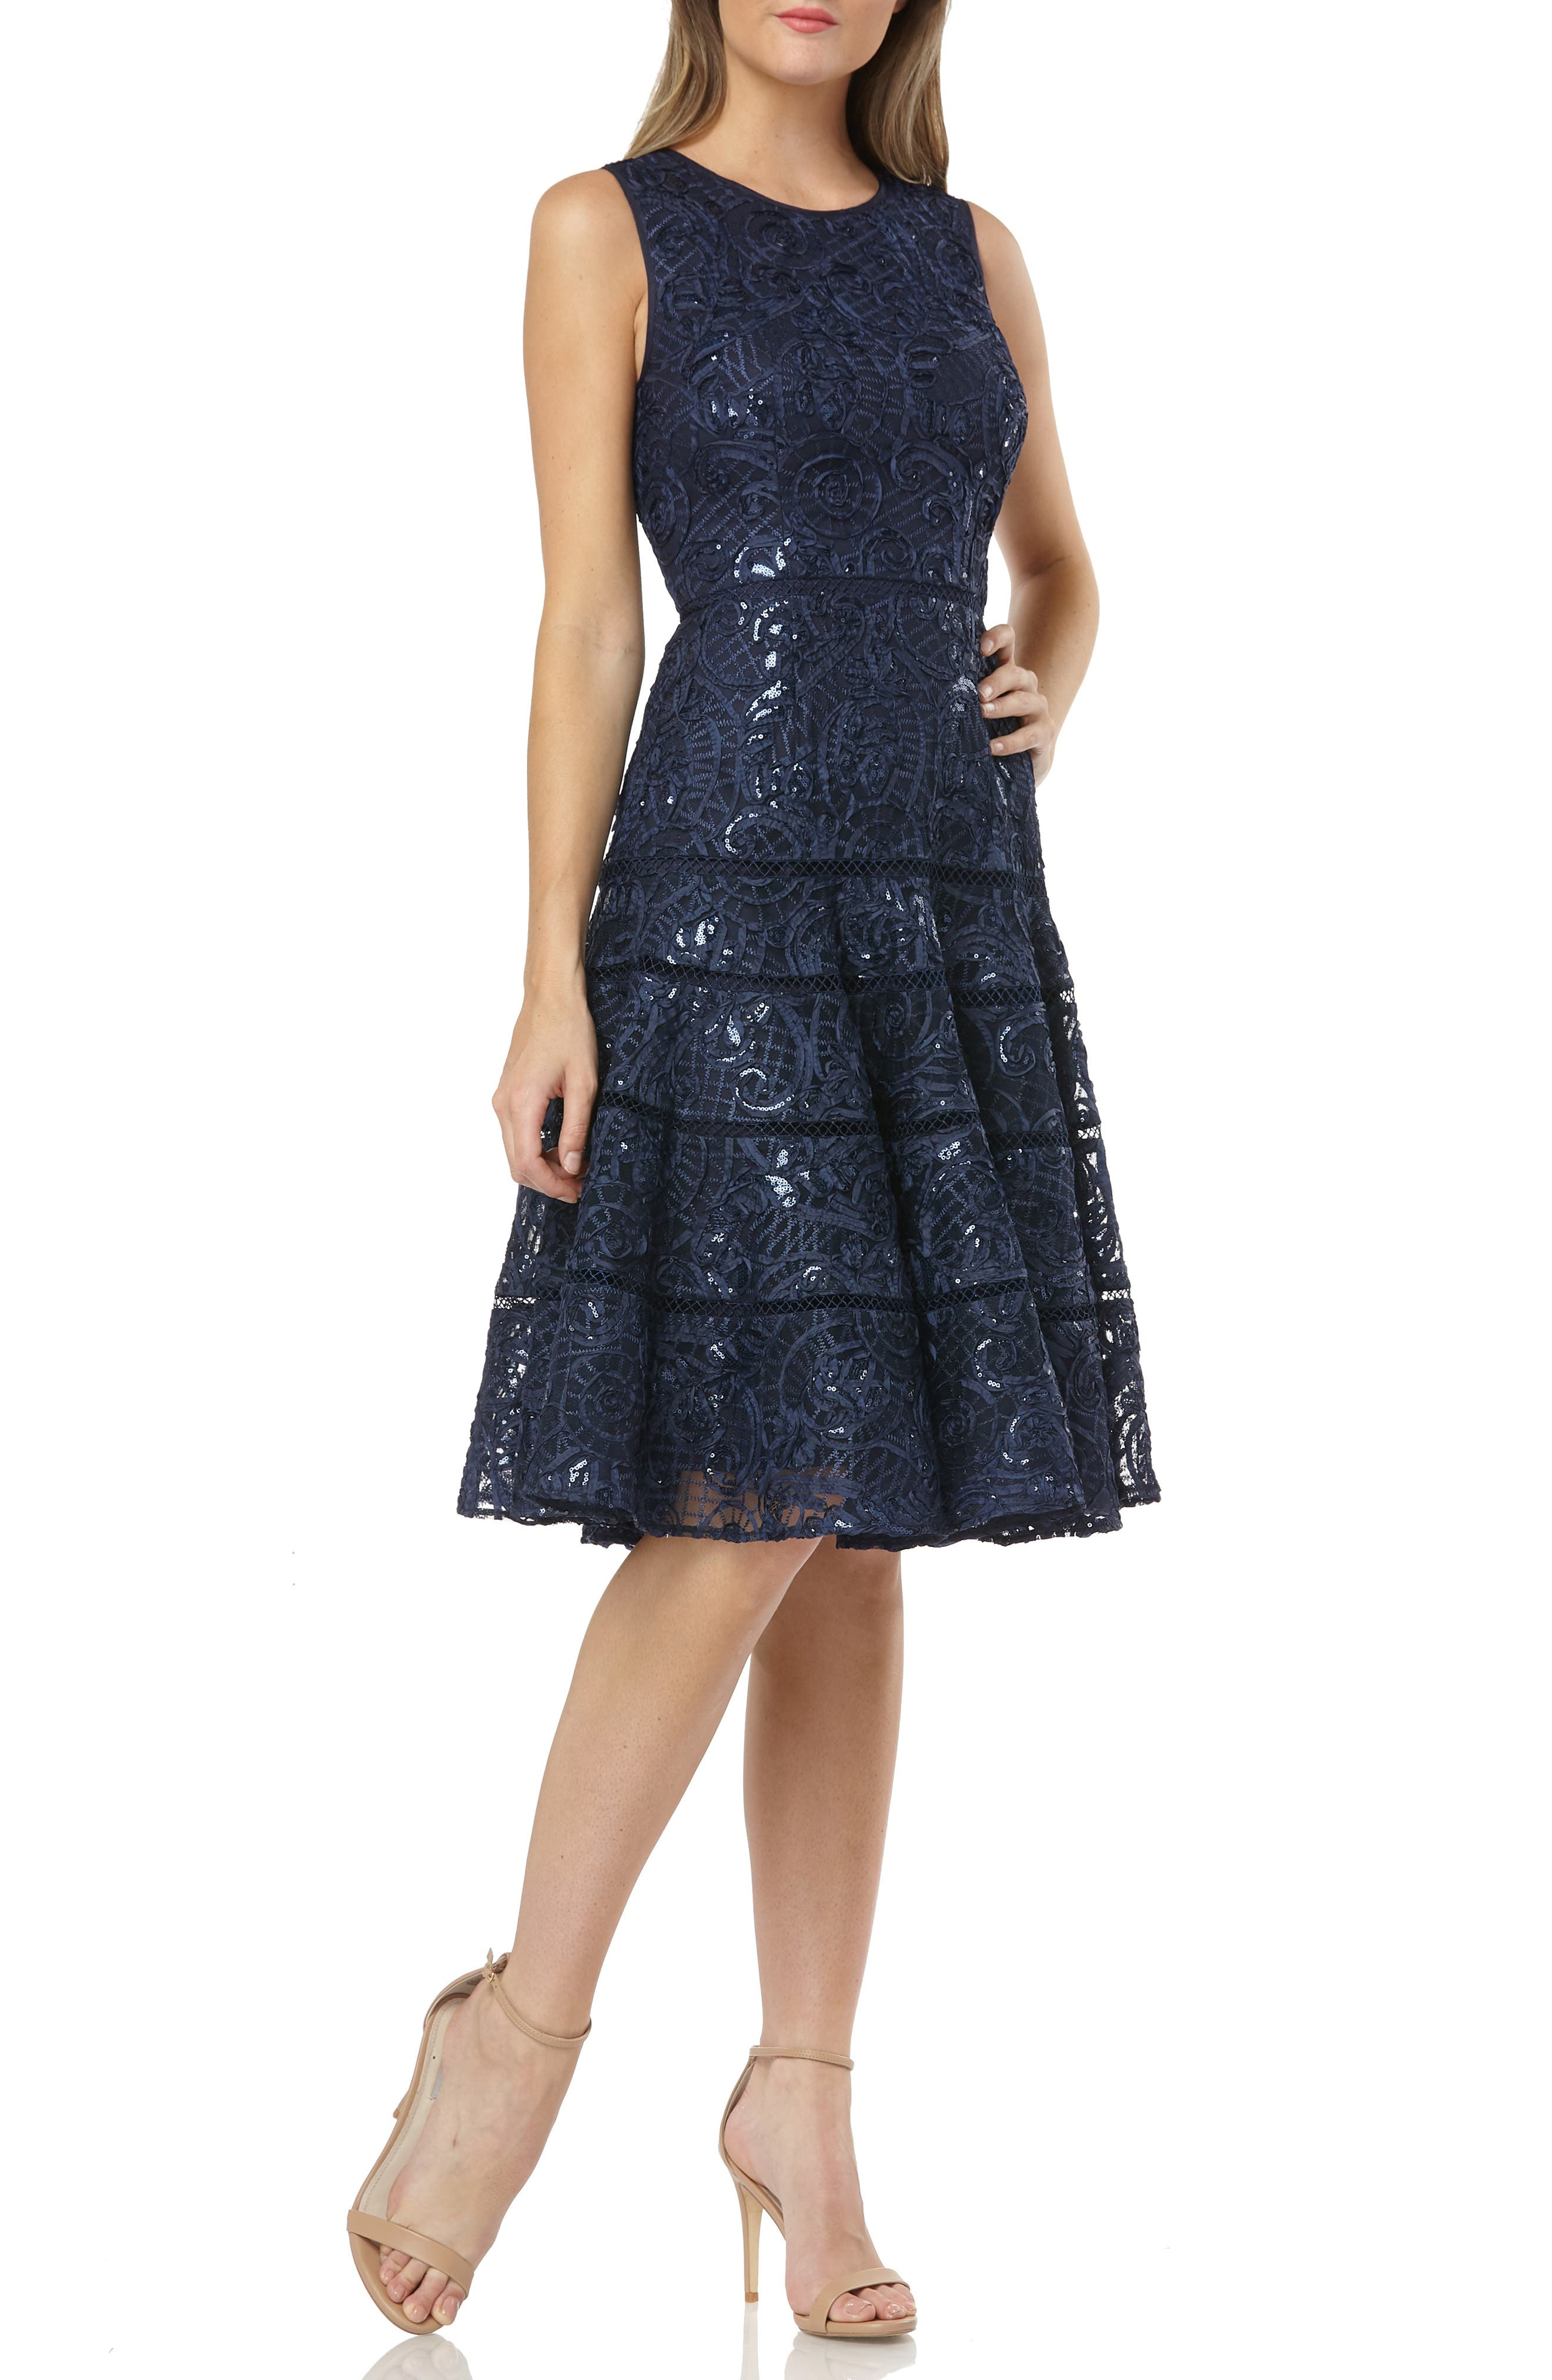 CARMEN MARC VALVO INFUSION Soutache Fit & Flare Dress in Navy